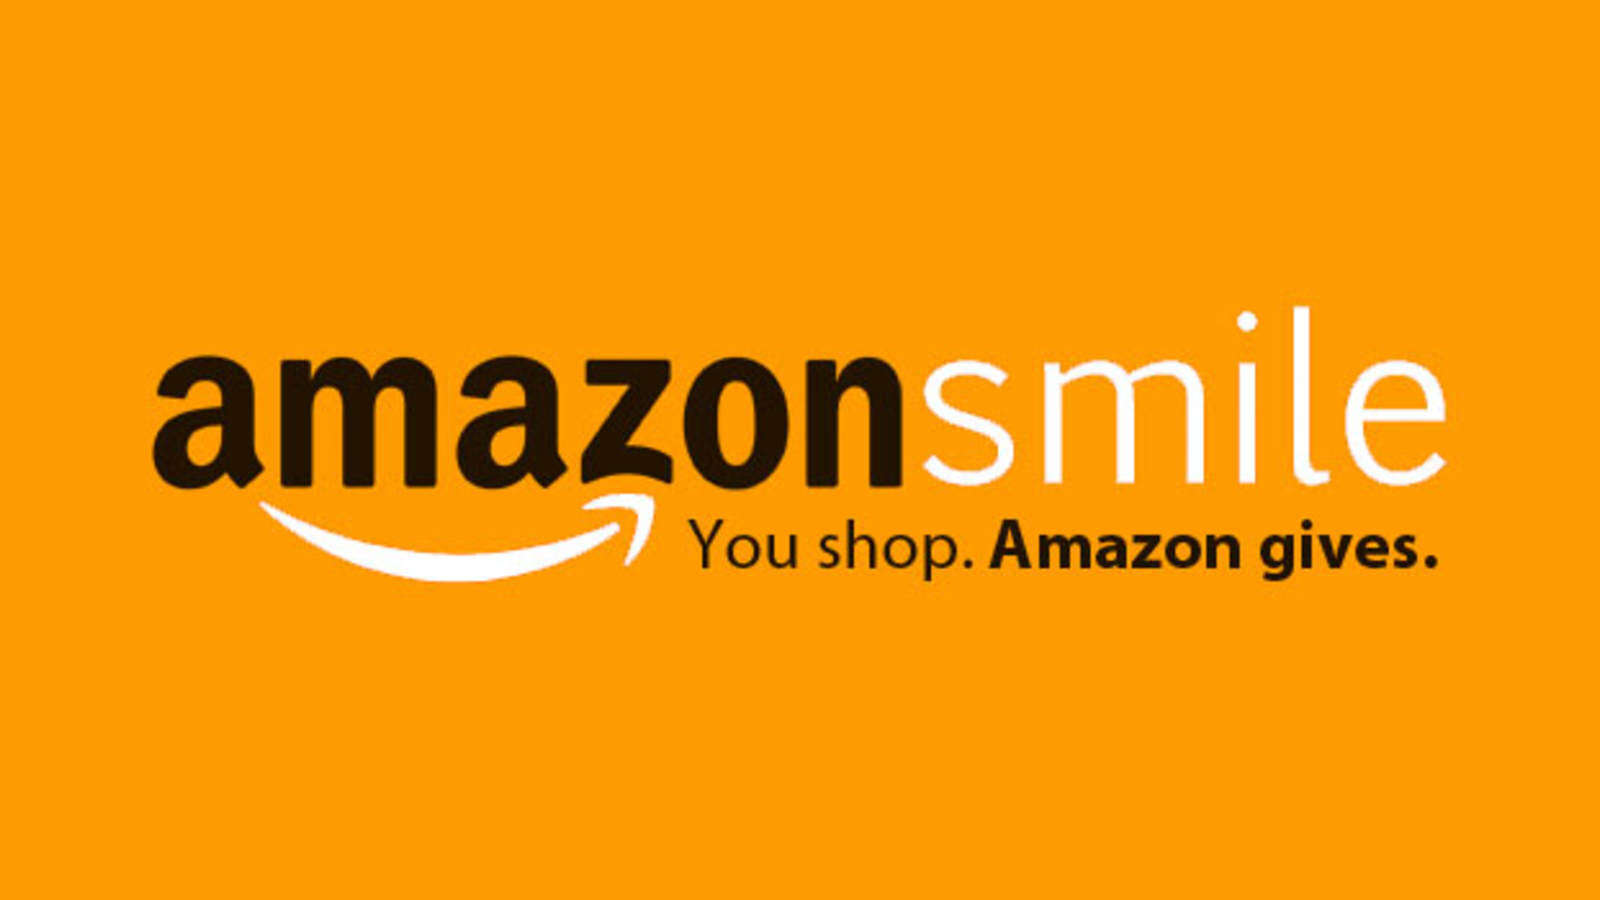 The Arc of Benton County can benefit with your Amazon purchases.